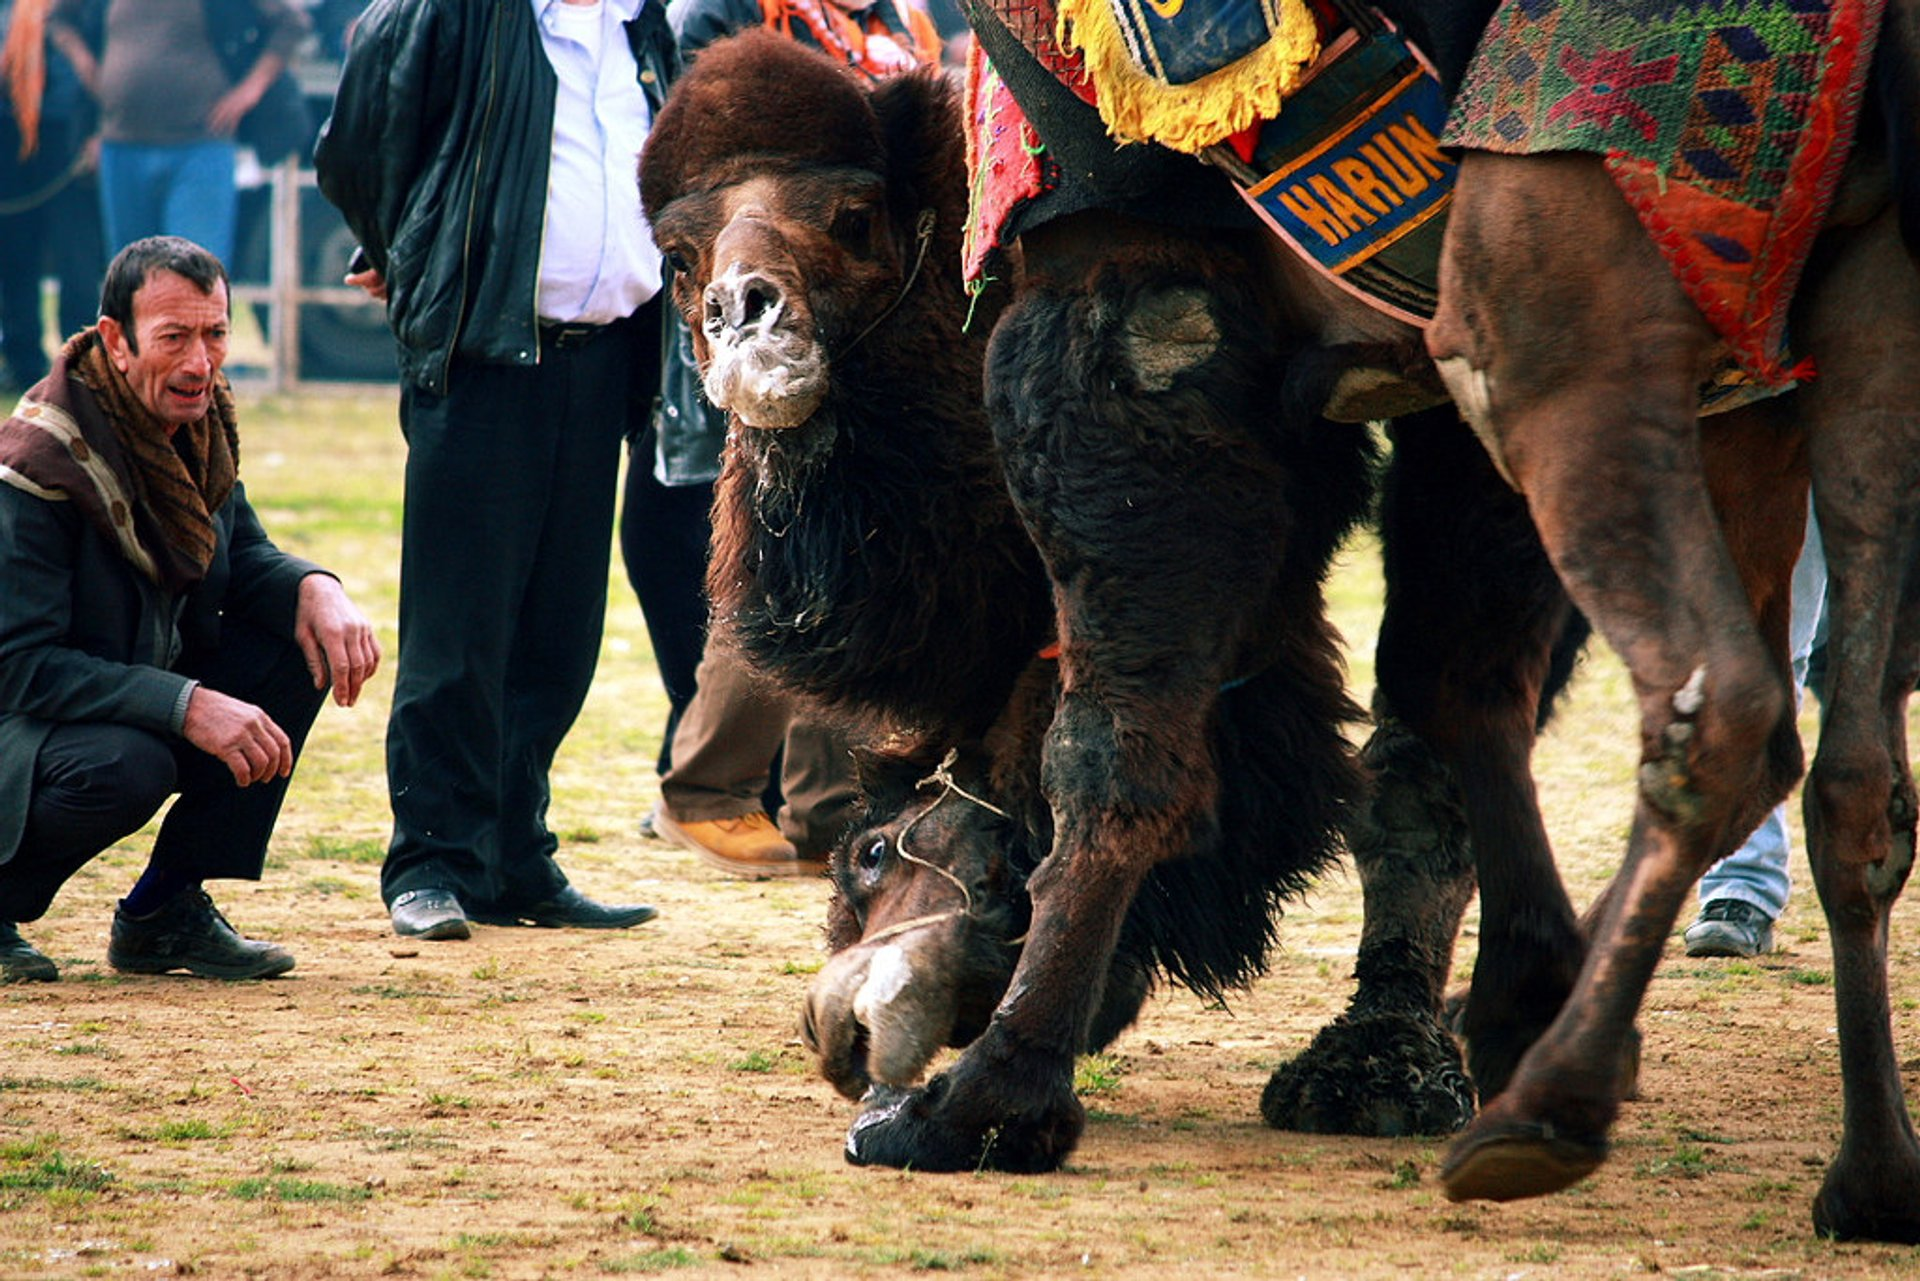 Camel Wrestling in Turkey - Best Season